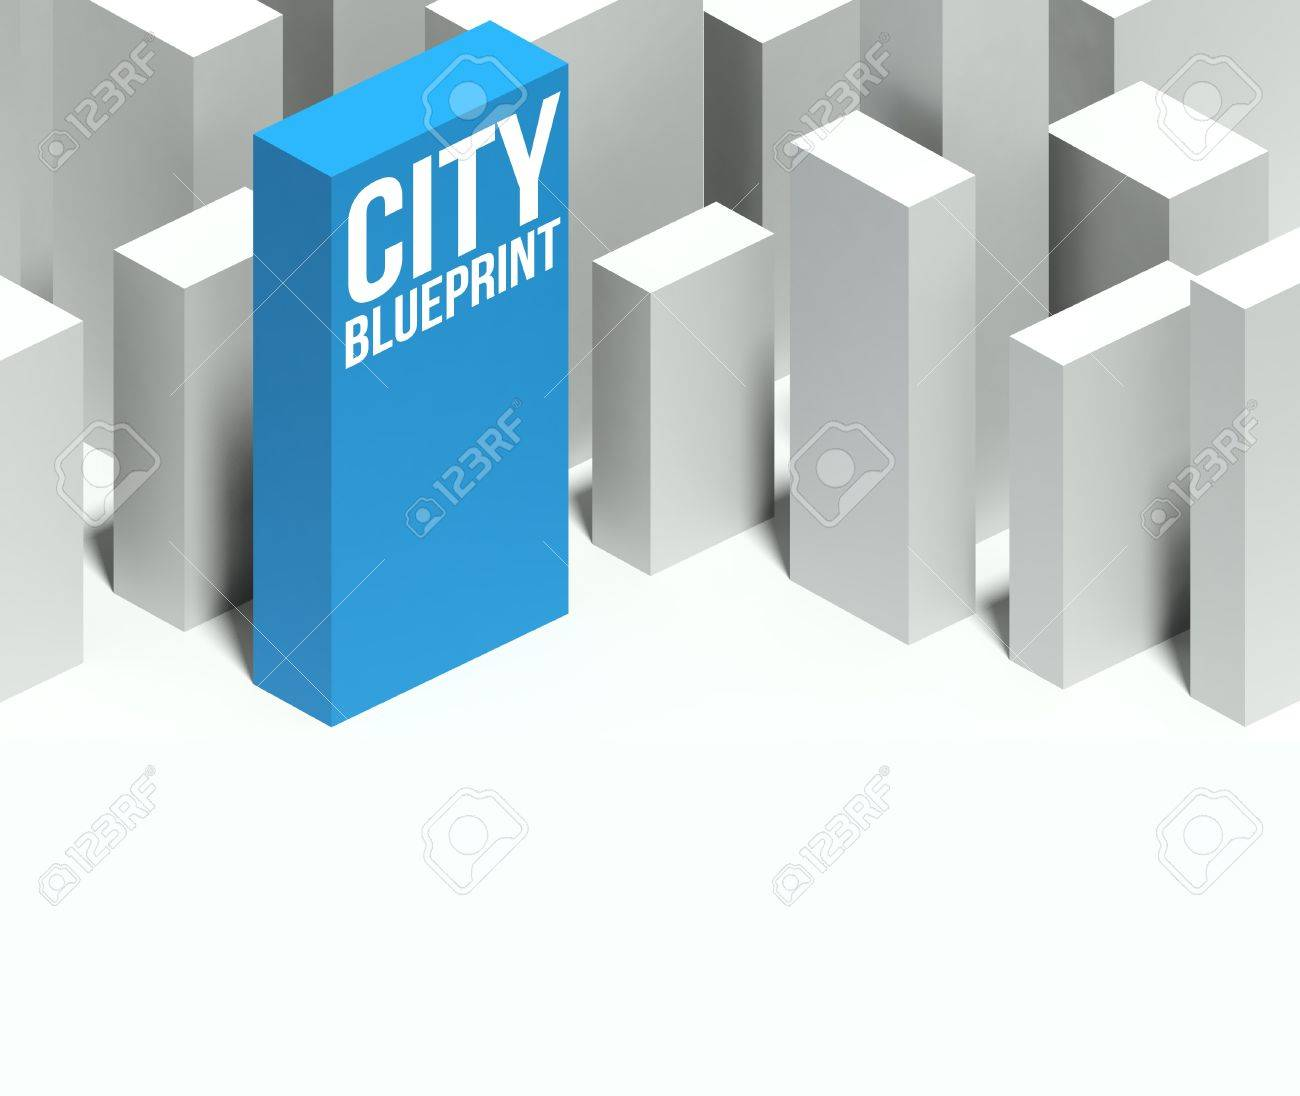 3d city blueprint conceptual model of miniature downtown with